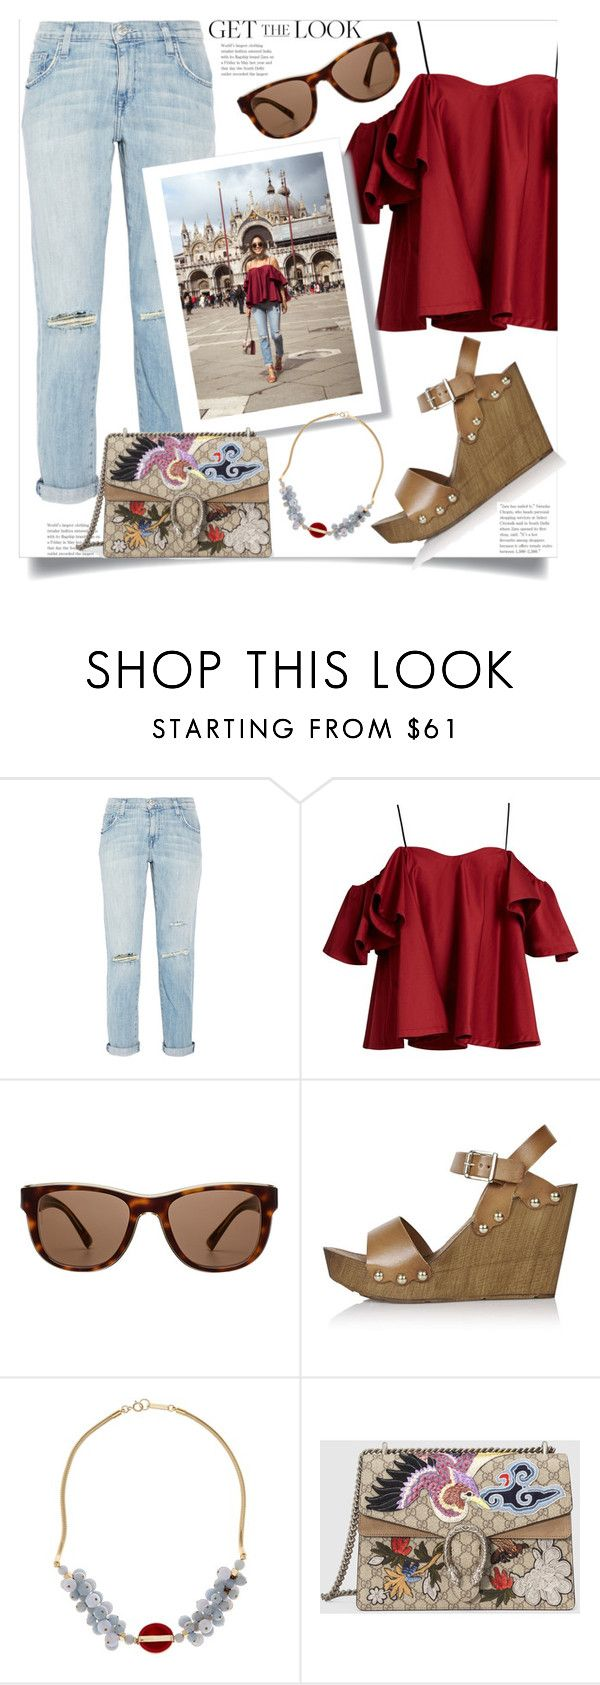 """Blogger Style - Get Coohuco's Look"" by hattie4palmerstone ❤ liked on Polyvore featuring Current/Elliott, Anna October, Dolce&Gabbana, Topshop, Isabel Marant, Gucci and BloggerStyle"